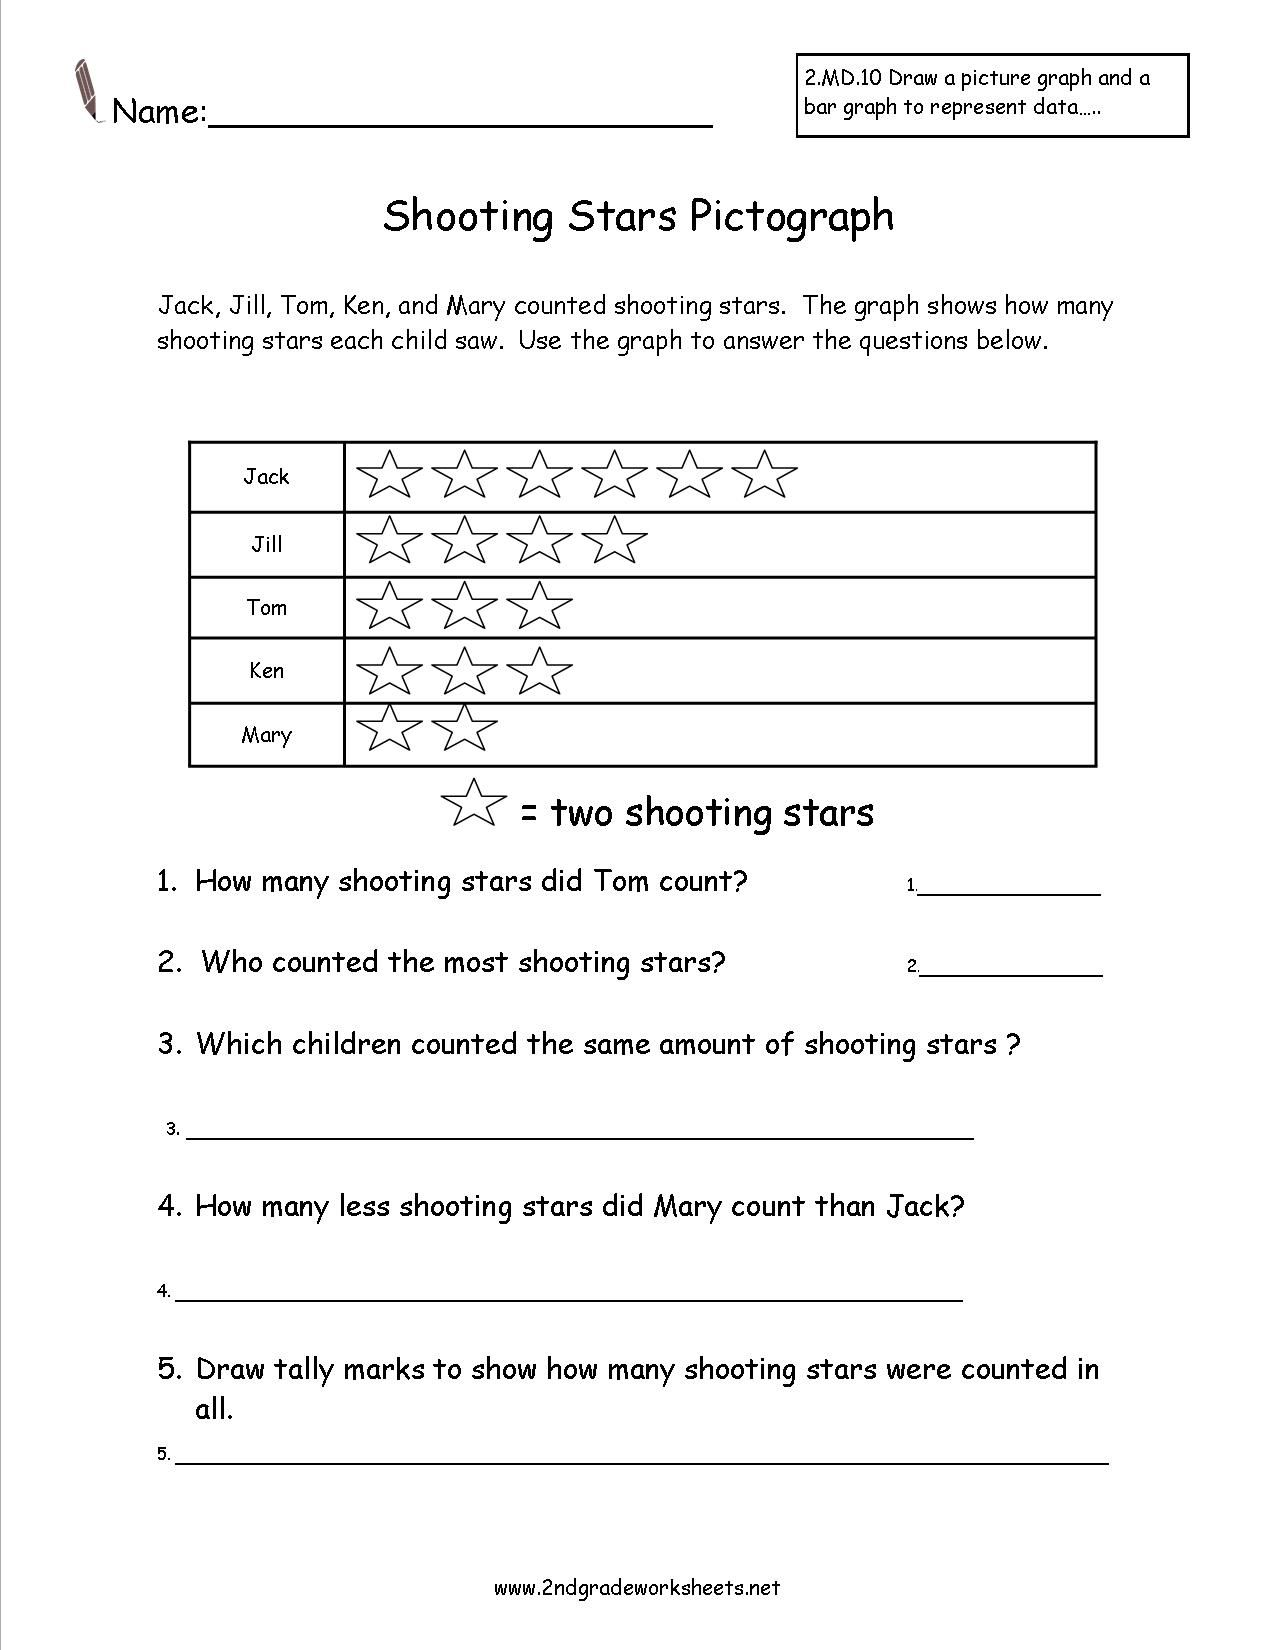 Worksheets Reading Worksheets Grade 5 shooting stars pictograph worksheet teaching pinterest second grade reading and creating worksheets